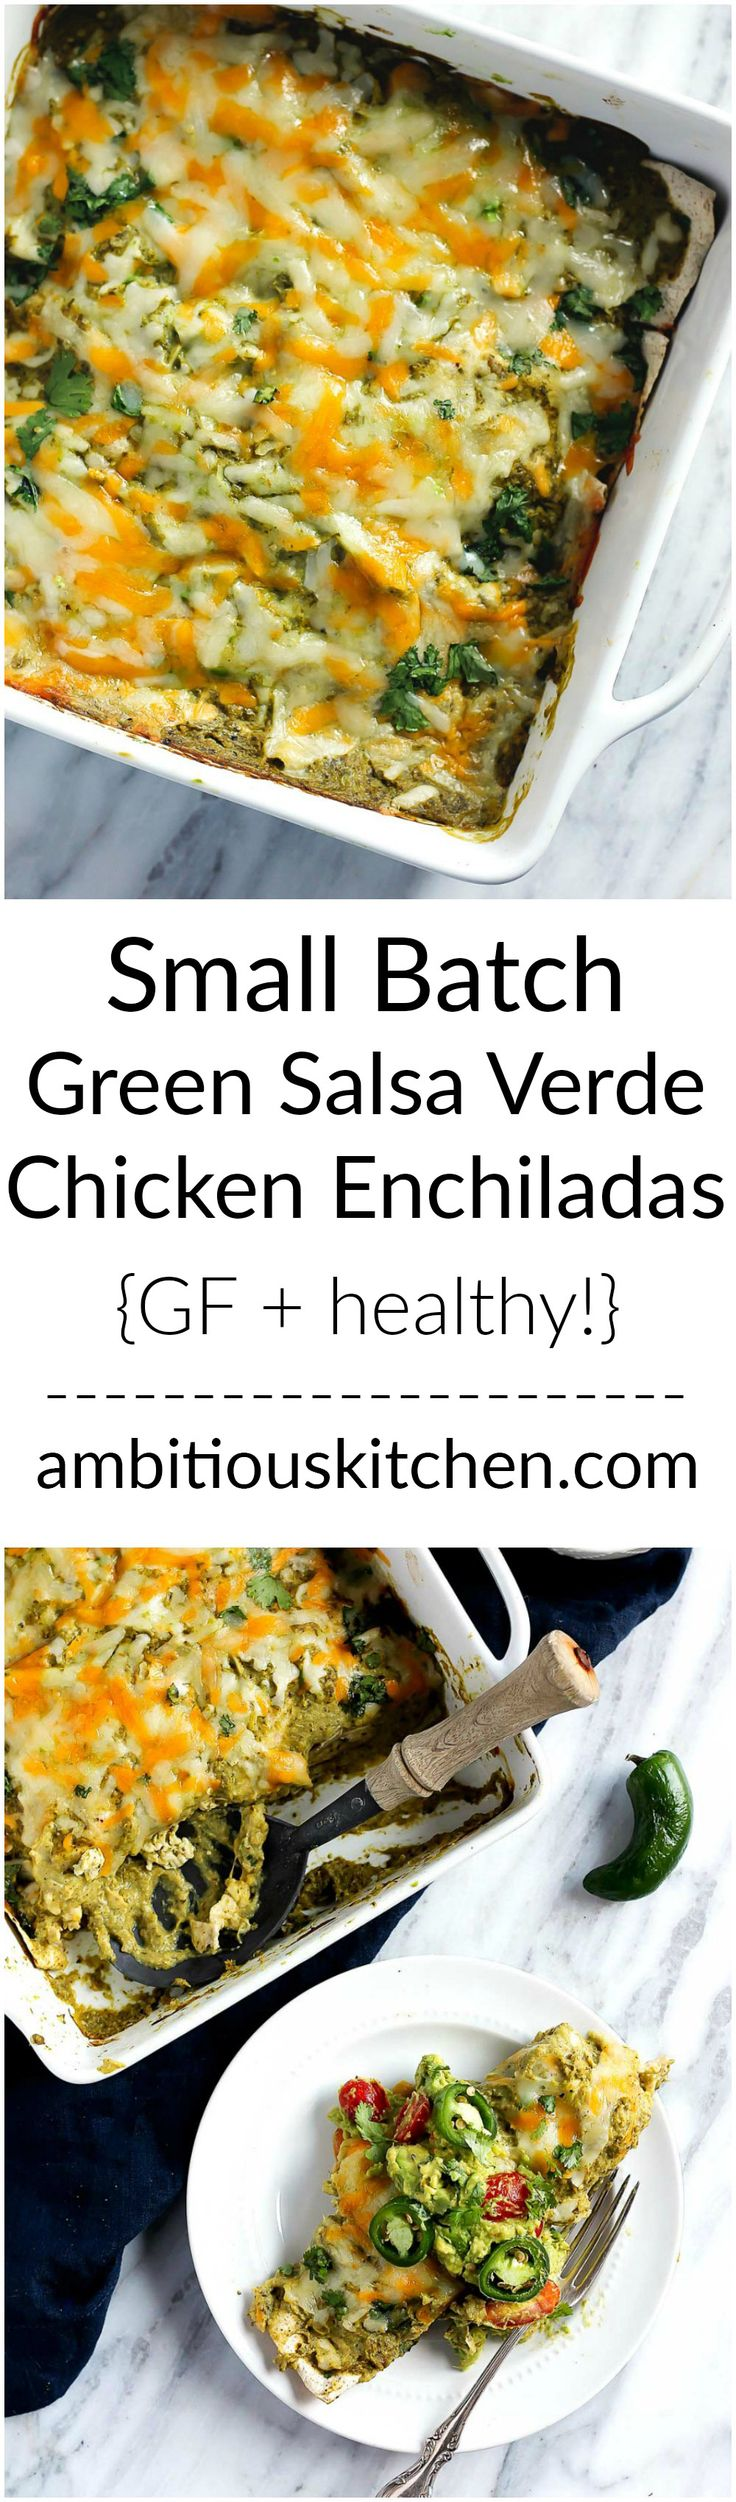 Time for a healthy comfort food makeover! Beautiful super green salsa verde chicken enchiladas that will have you licking your plate clean. These are small batch so they're perfect for a few people, or double the recipe for a crowd!